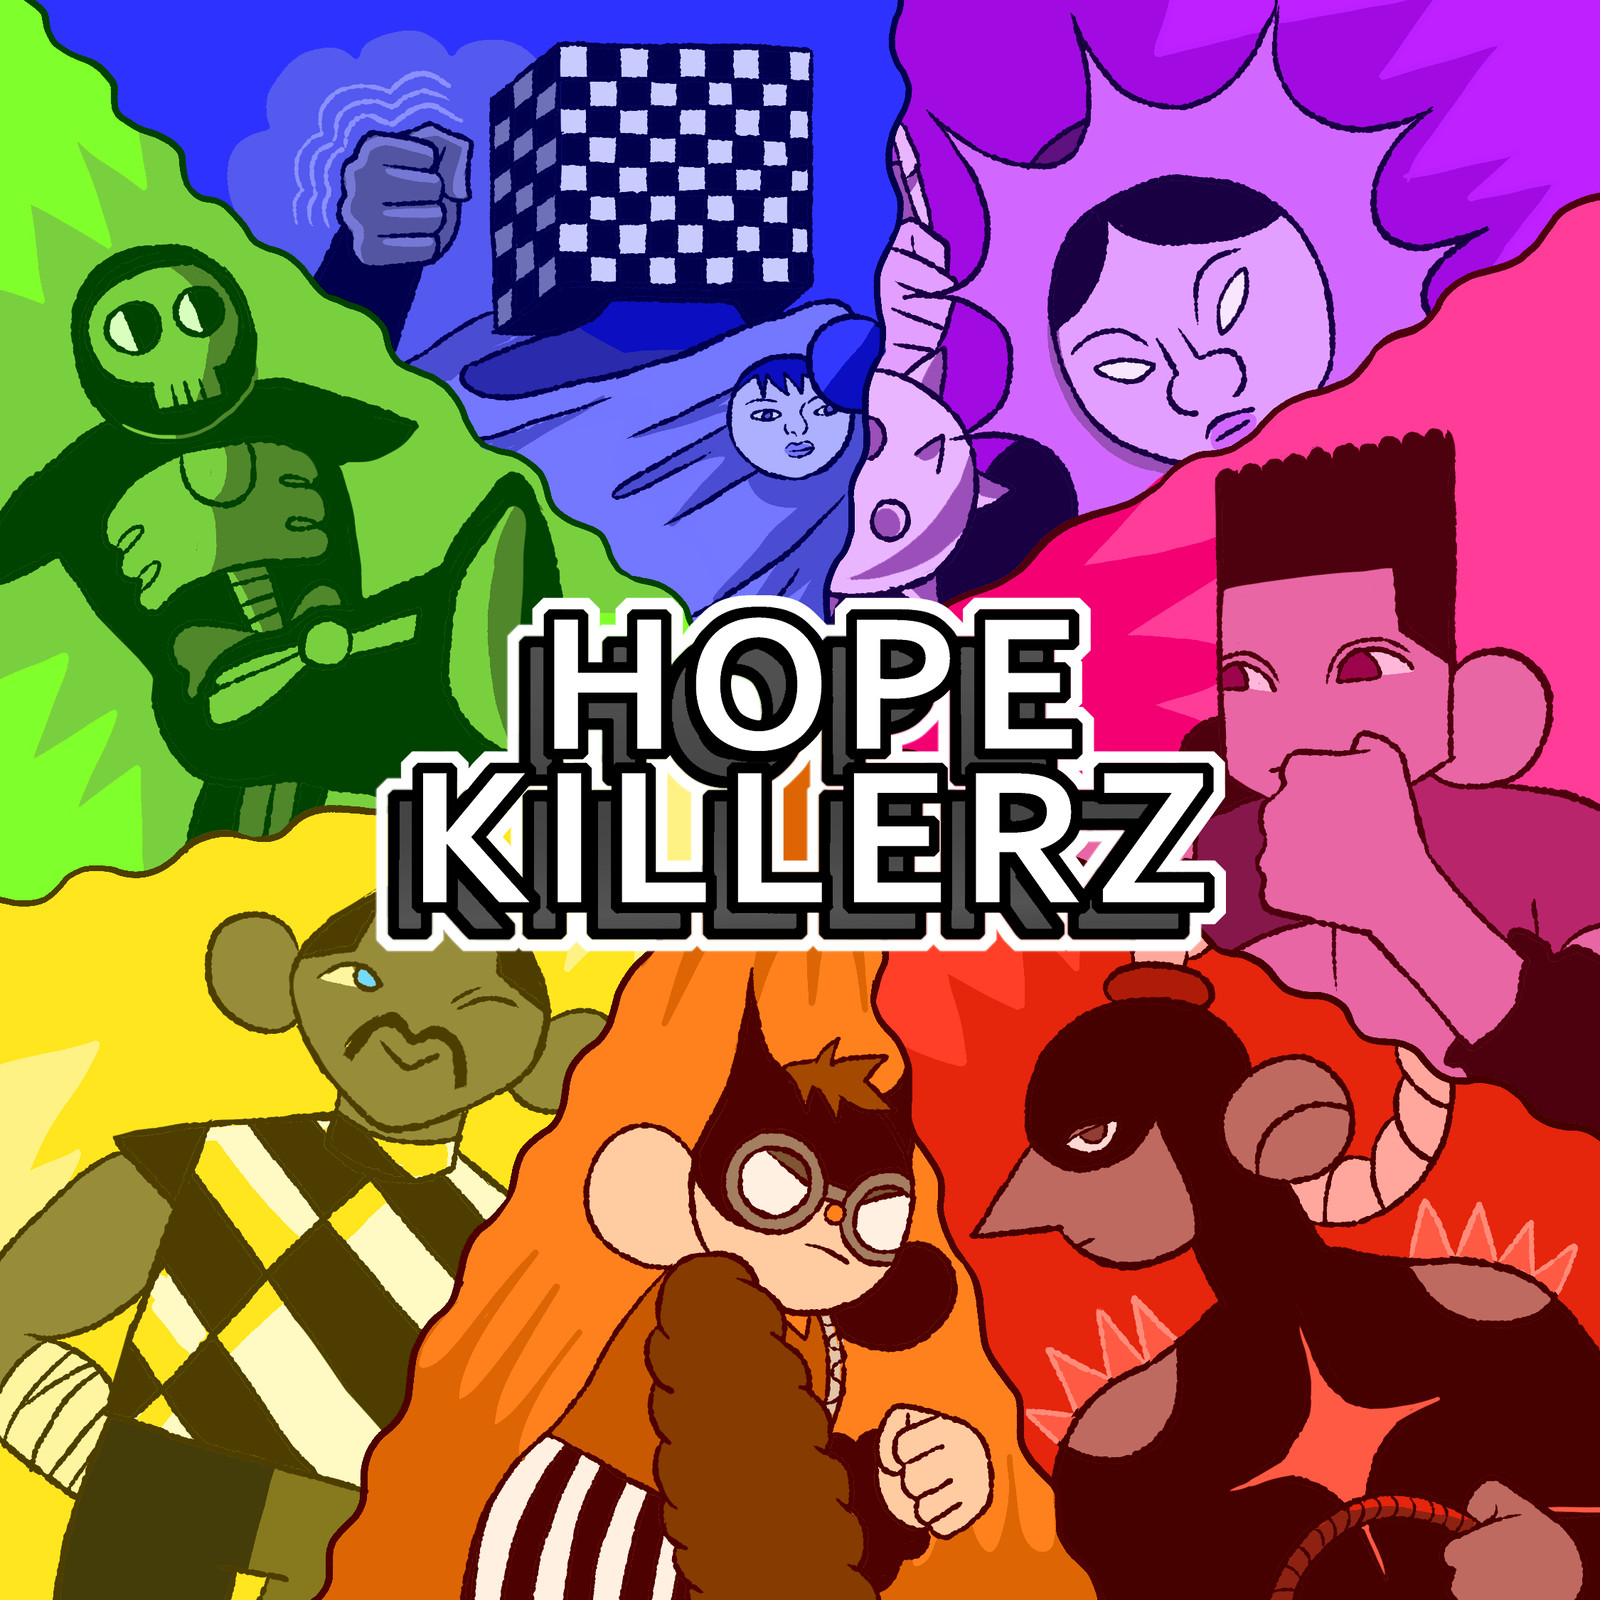 HOPE KILLERZ - Title Card